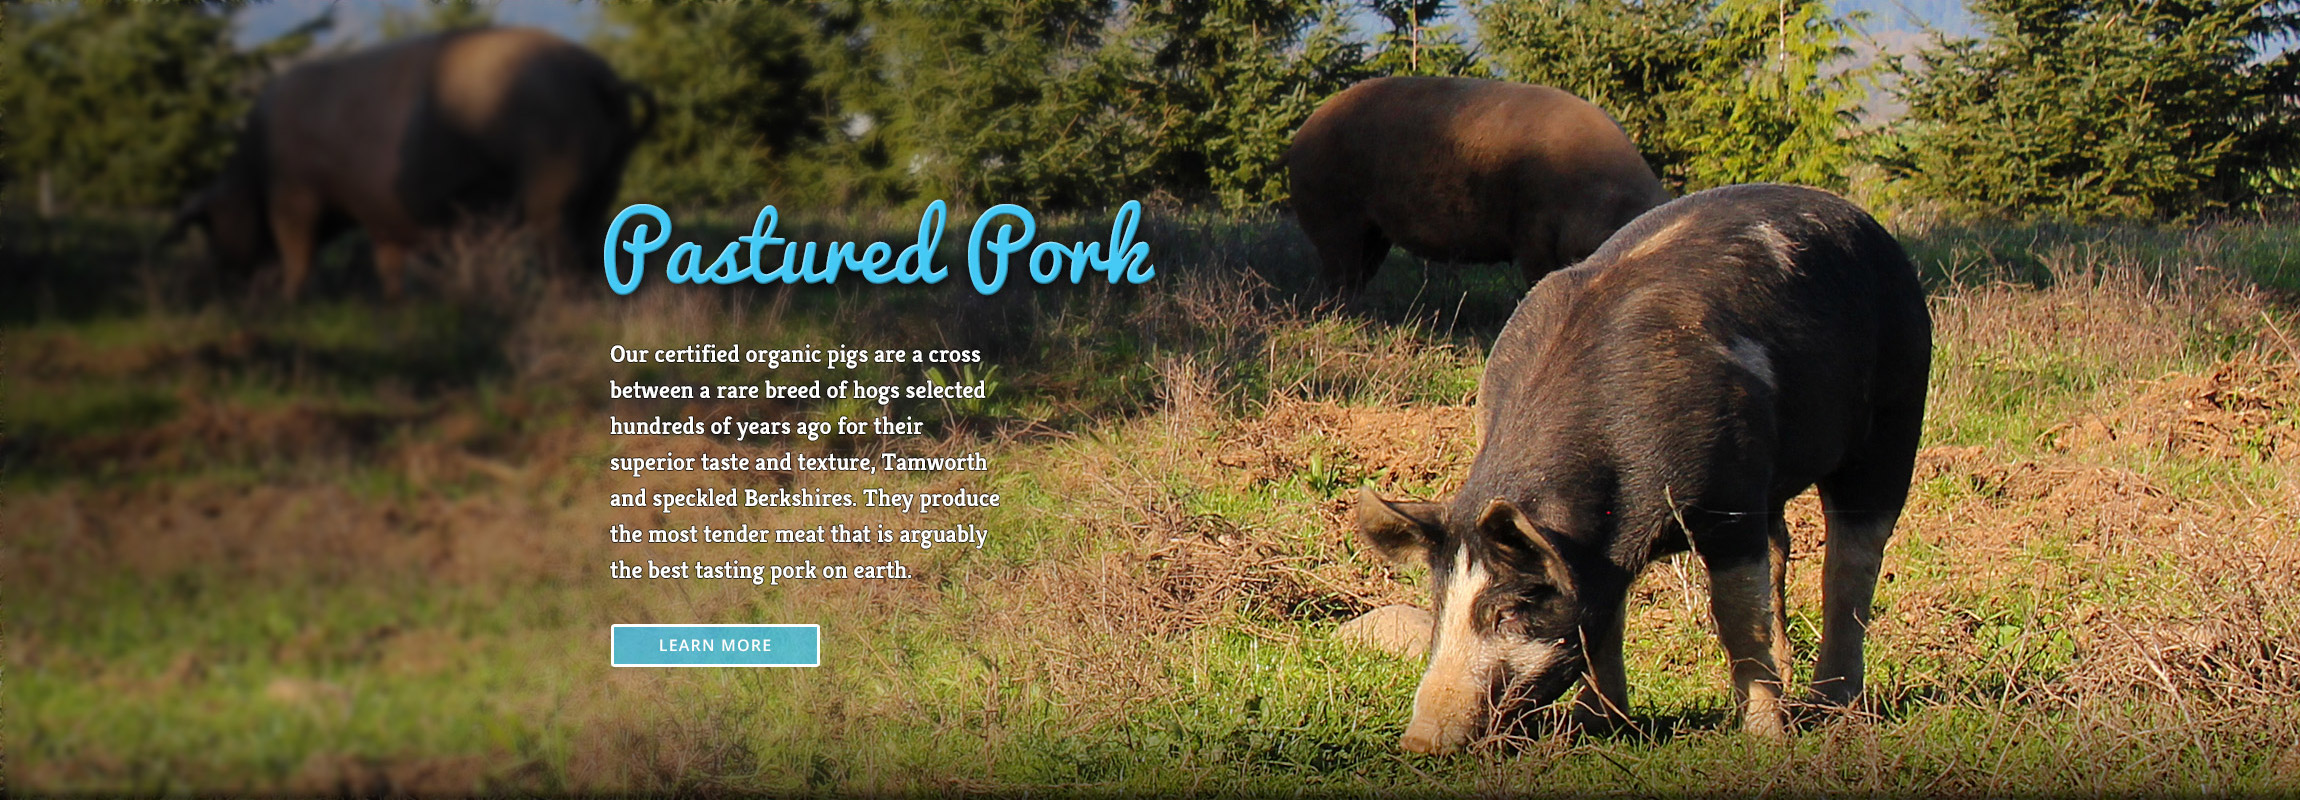 Alexandre EcoDairy Farms pastured pork website header - Graphic Regime